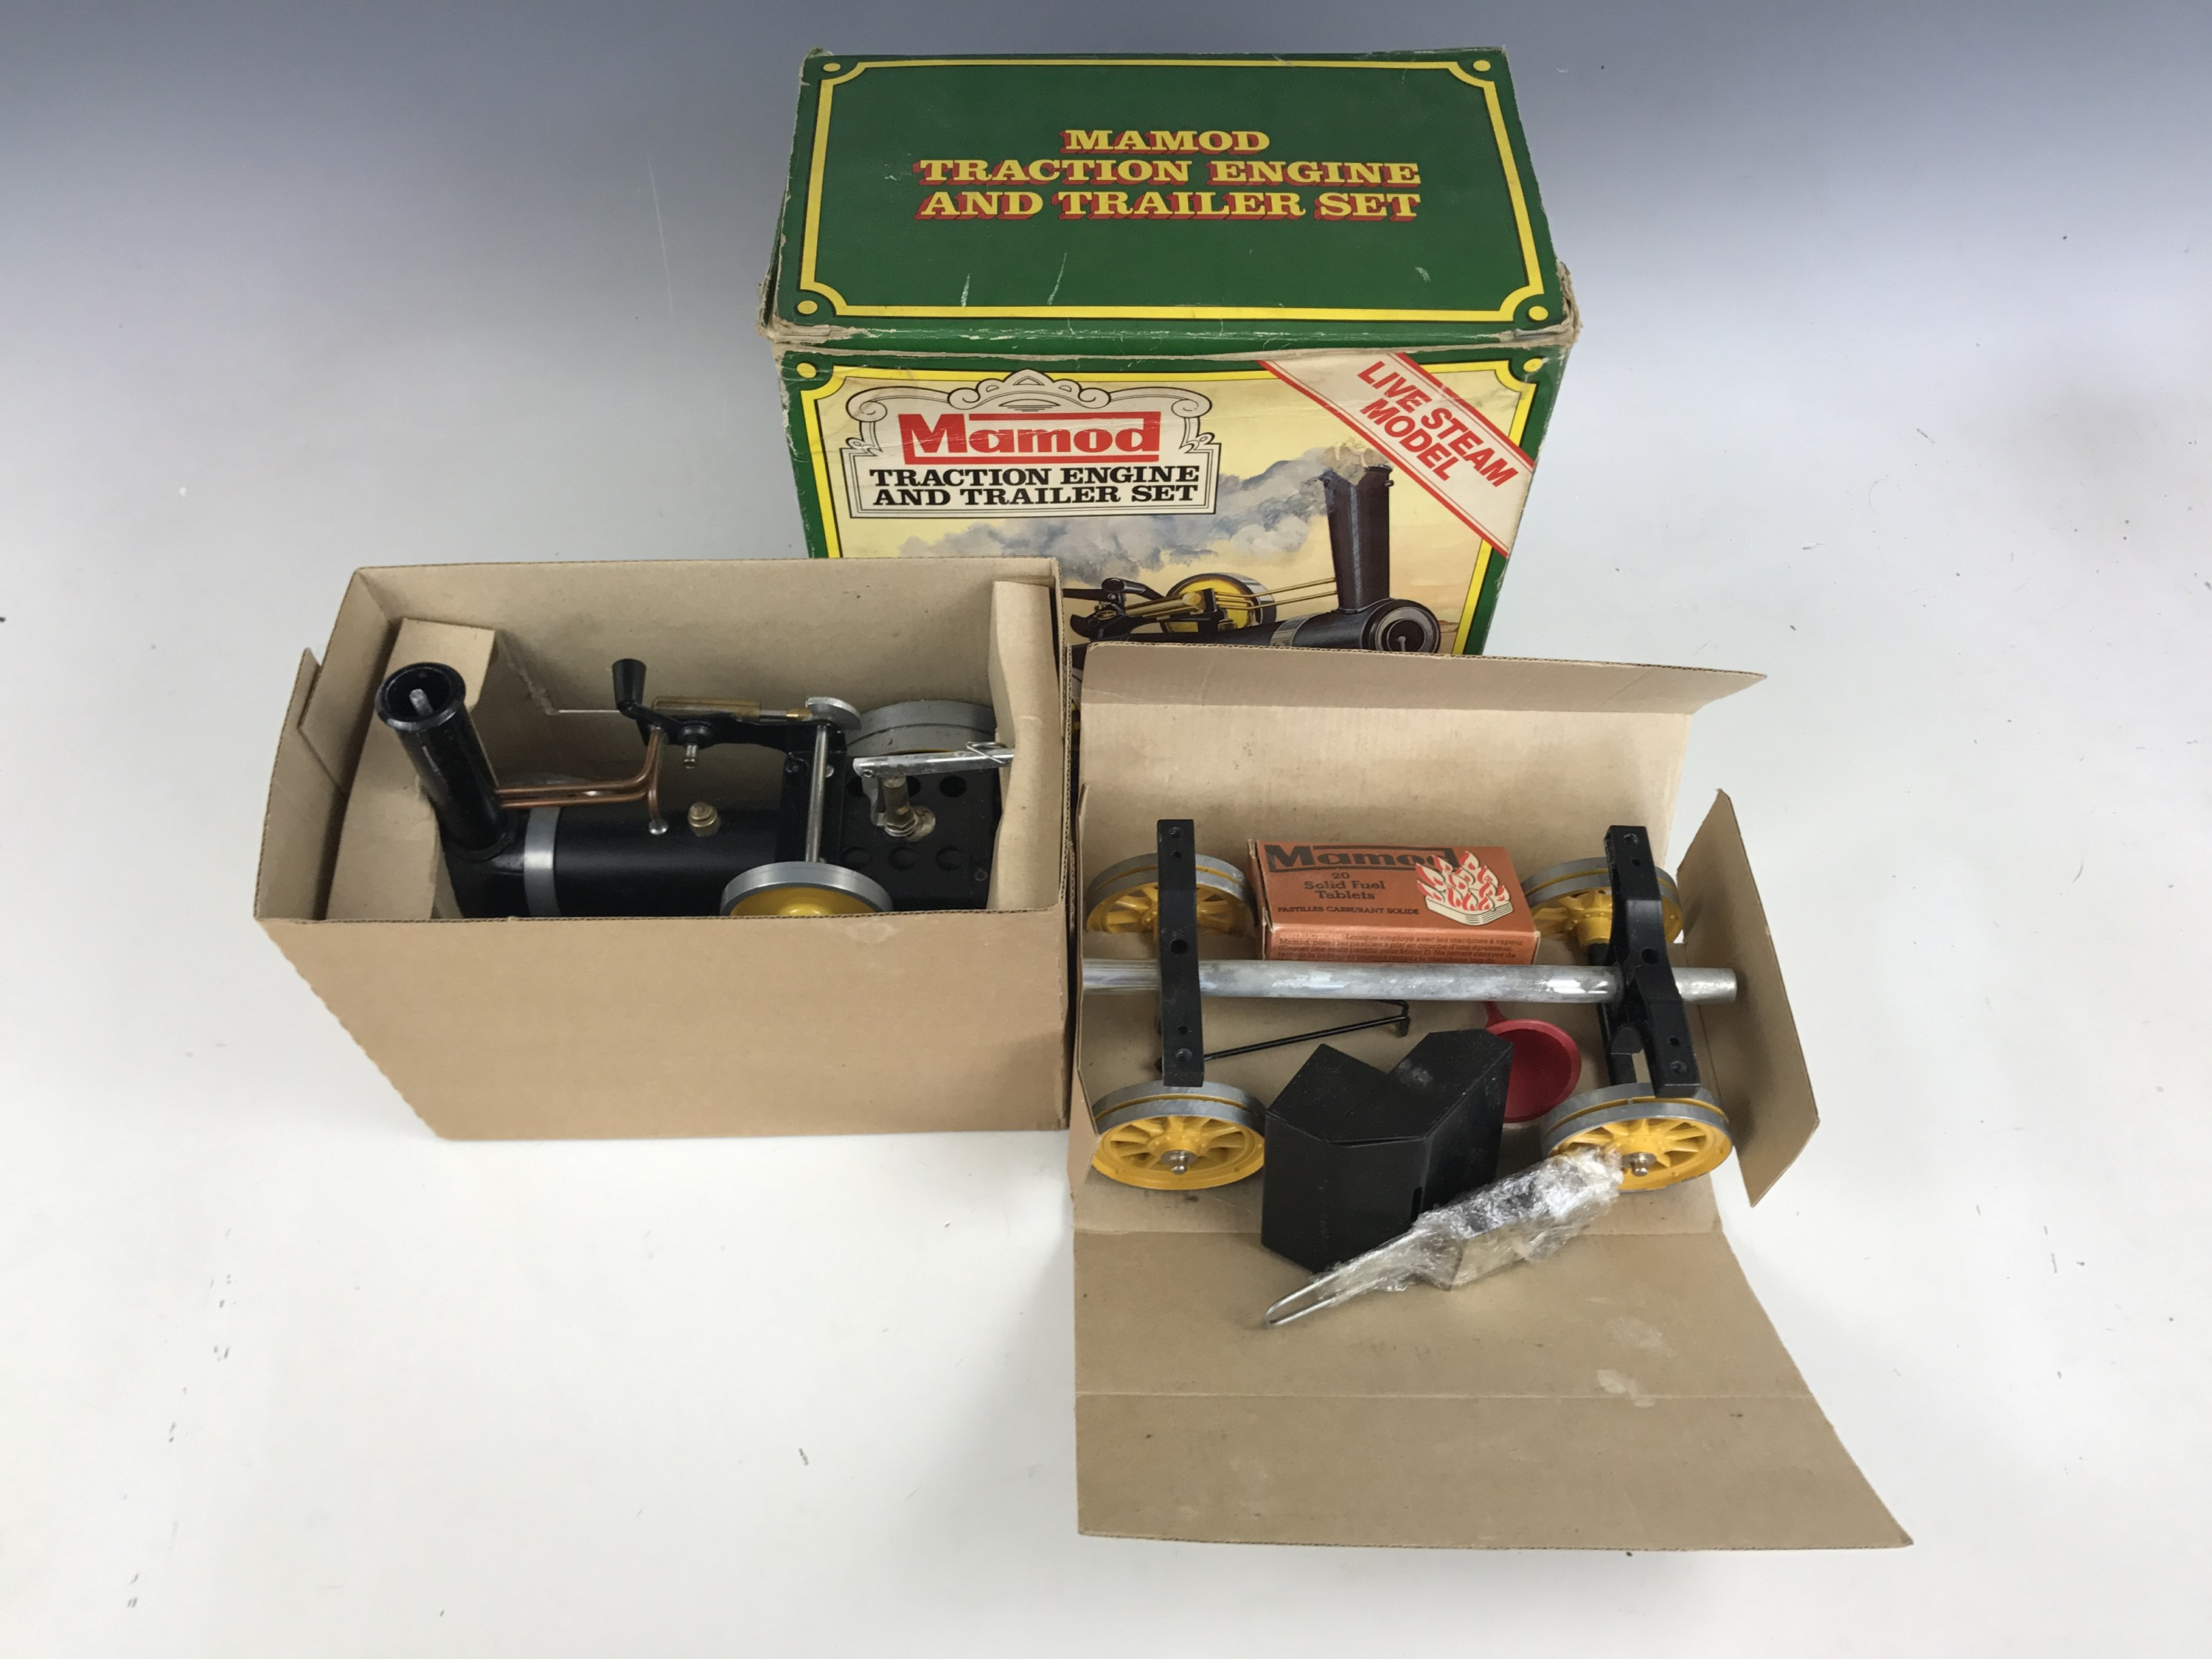 Lot 54 - A Mamod live-steam model Traction Engine and Trailer Set, together with original box